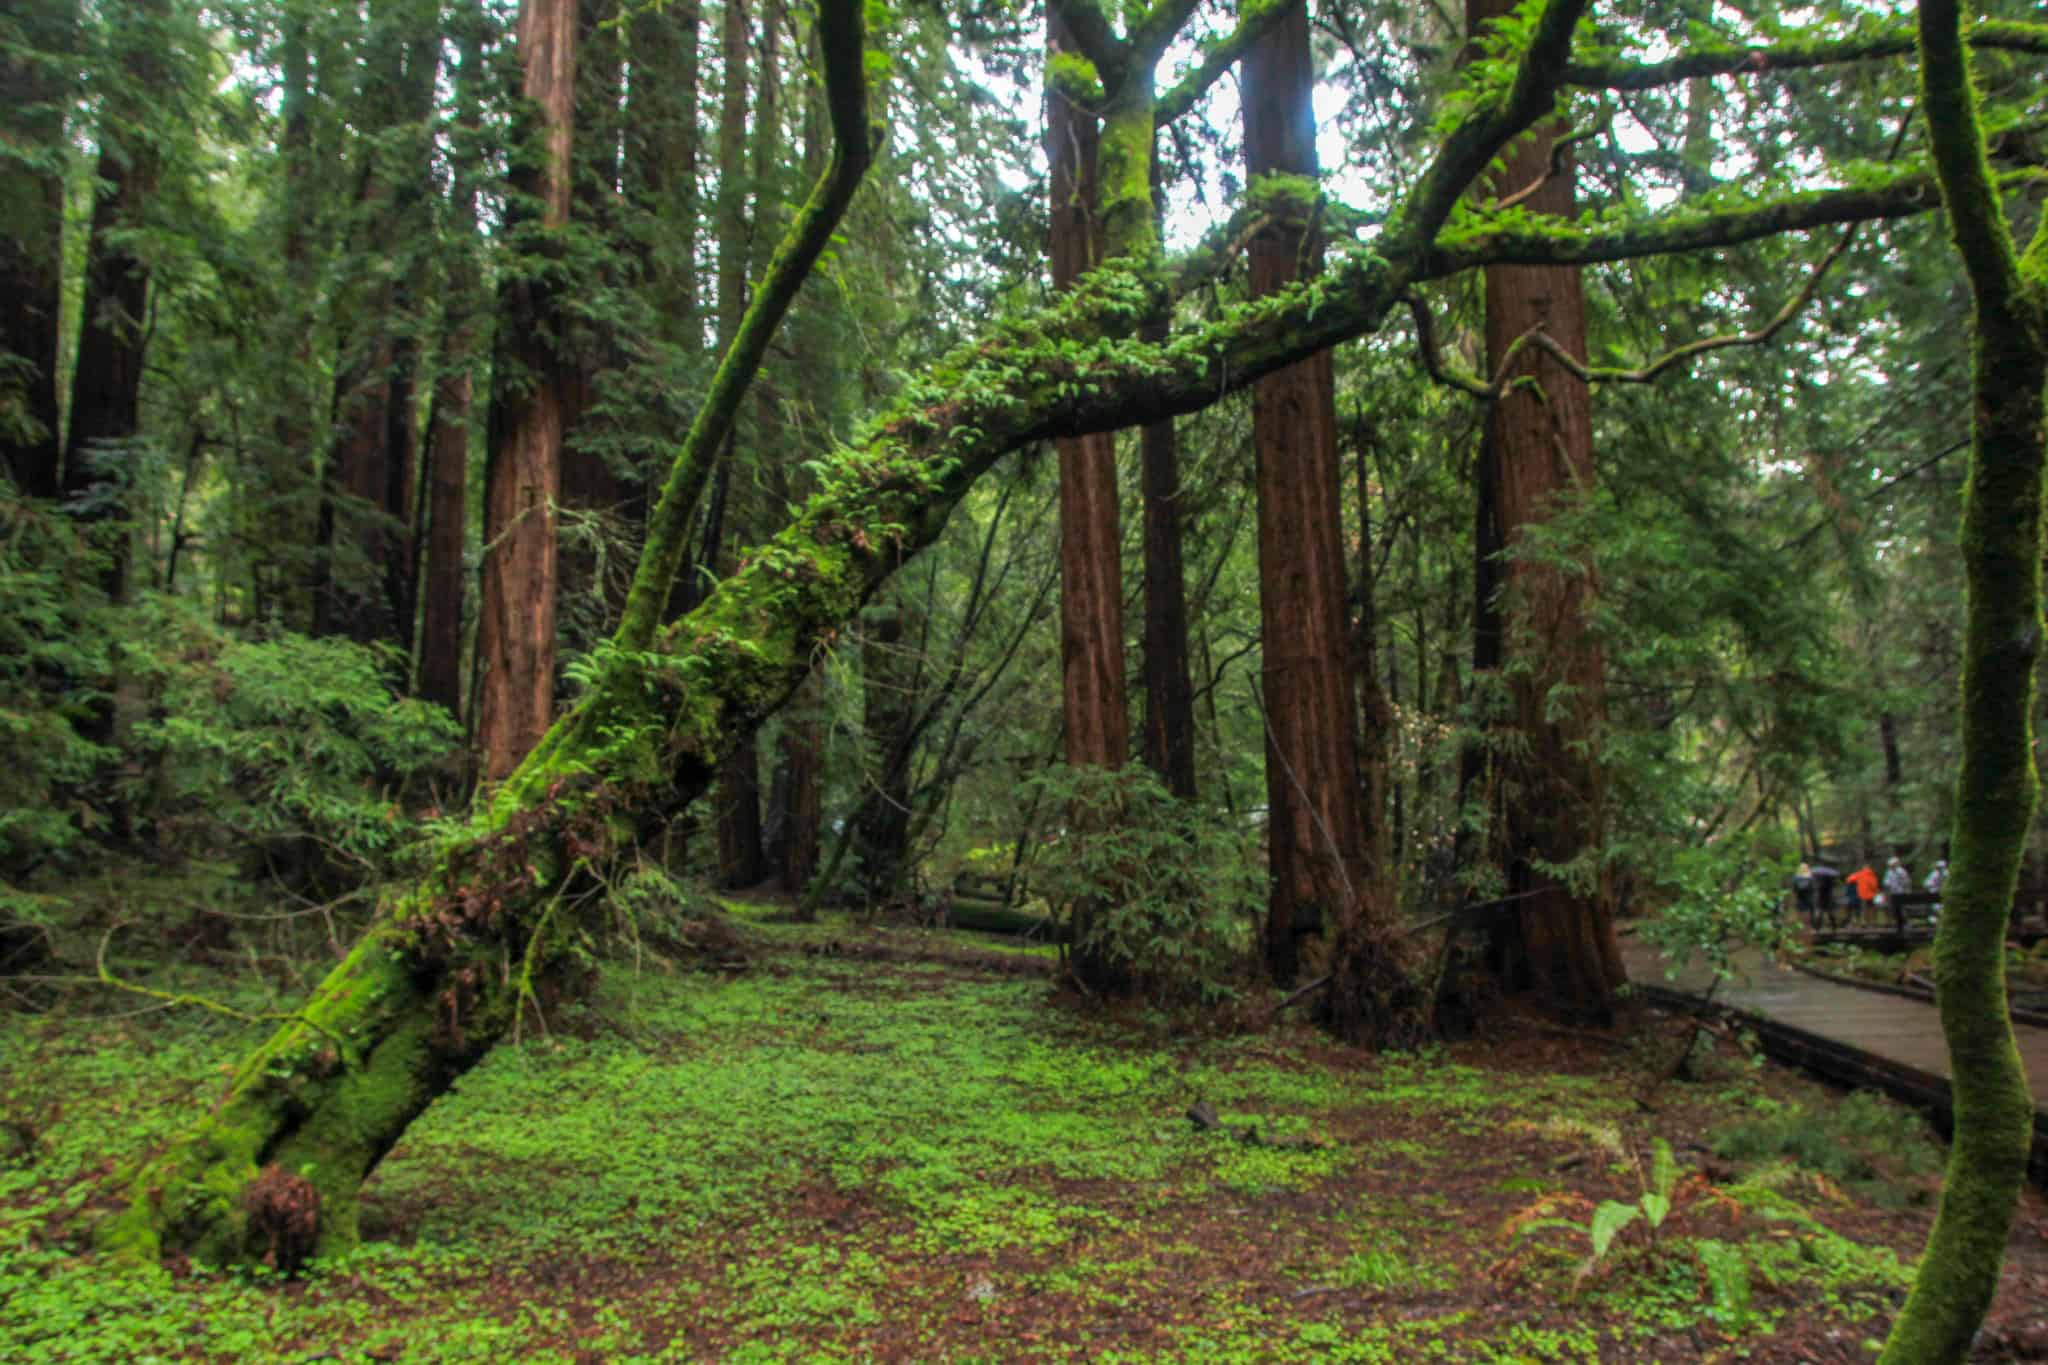 Hiking Muir Woods is a must when spending 2 days in San Francisco